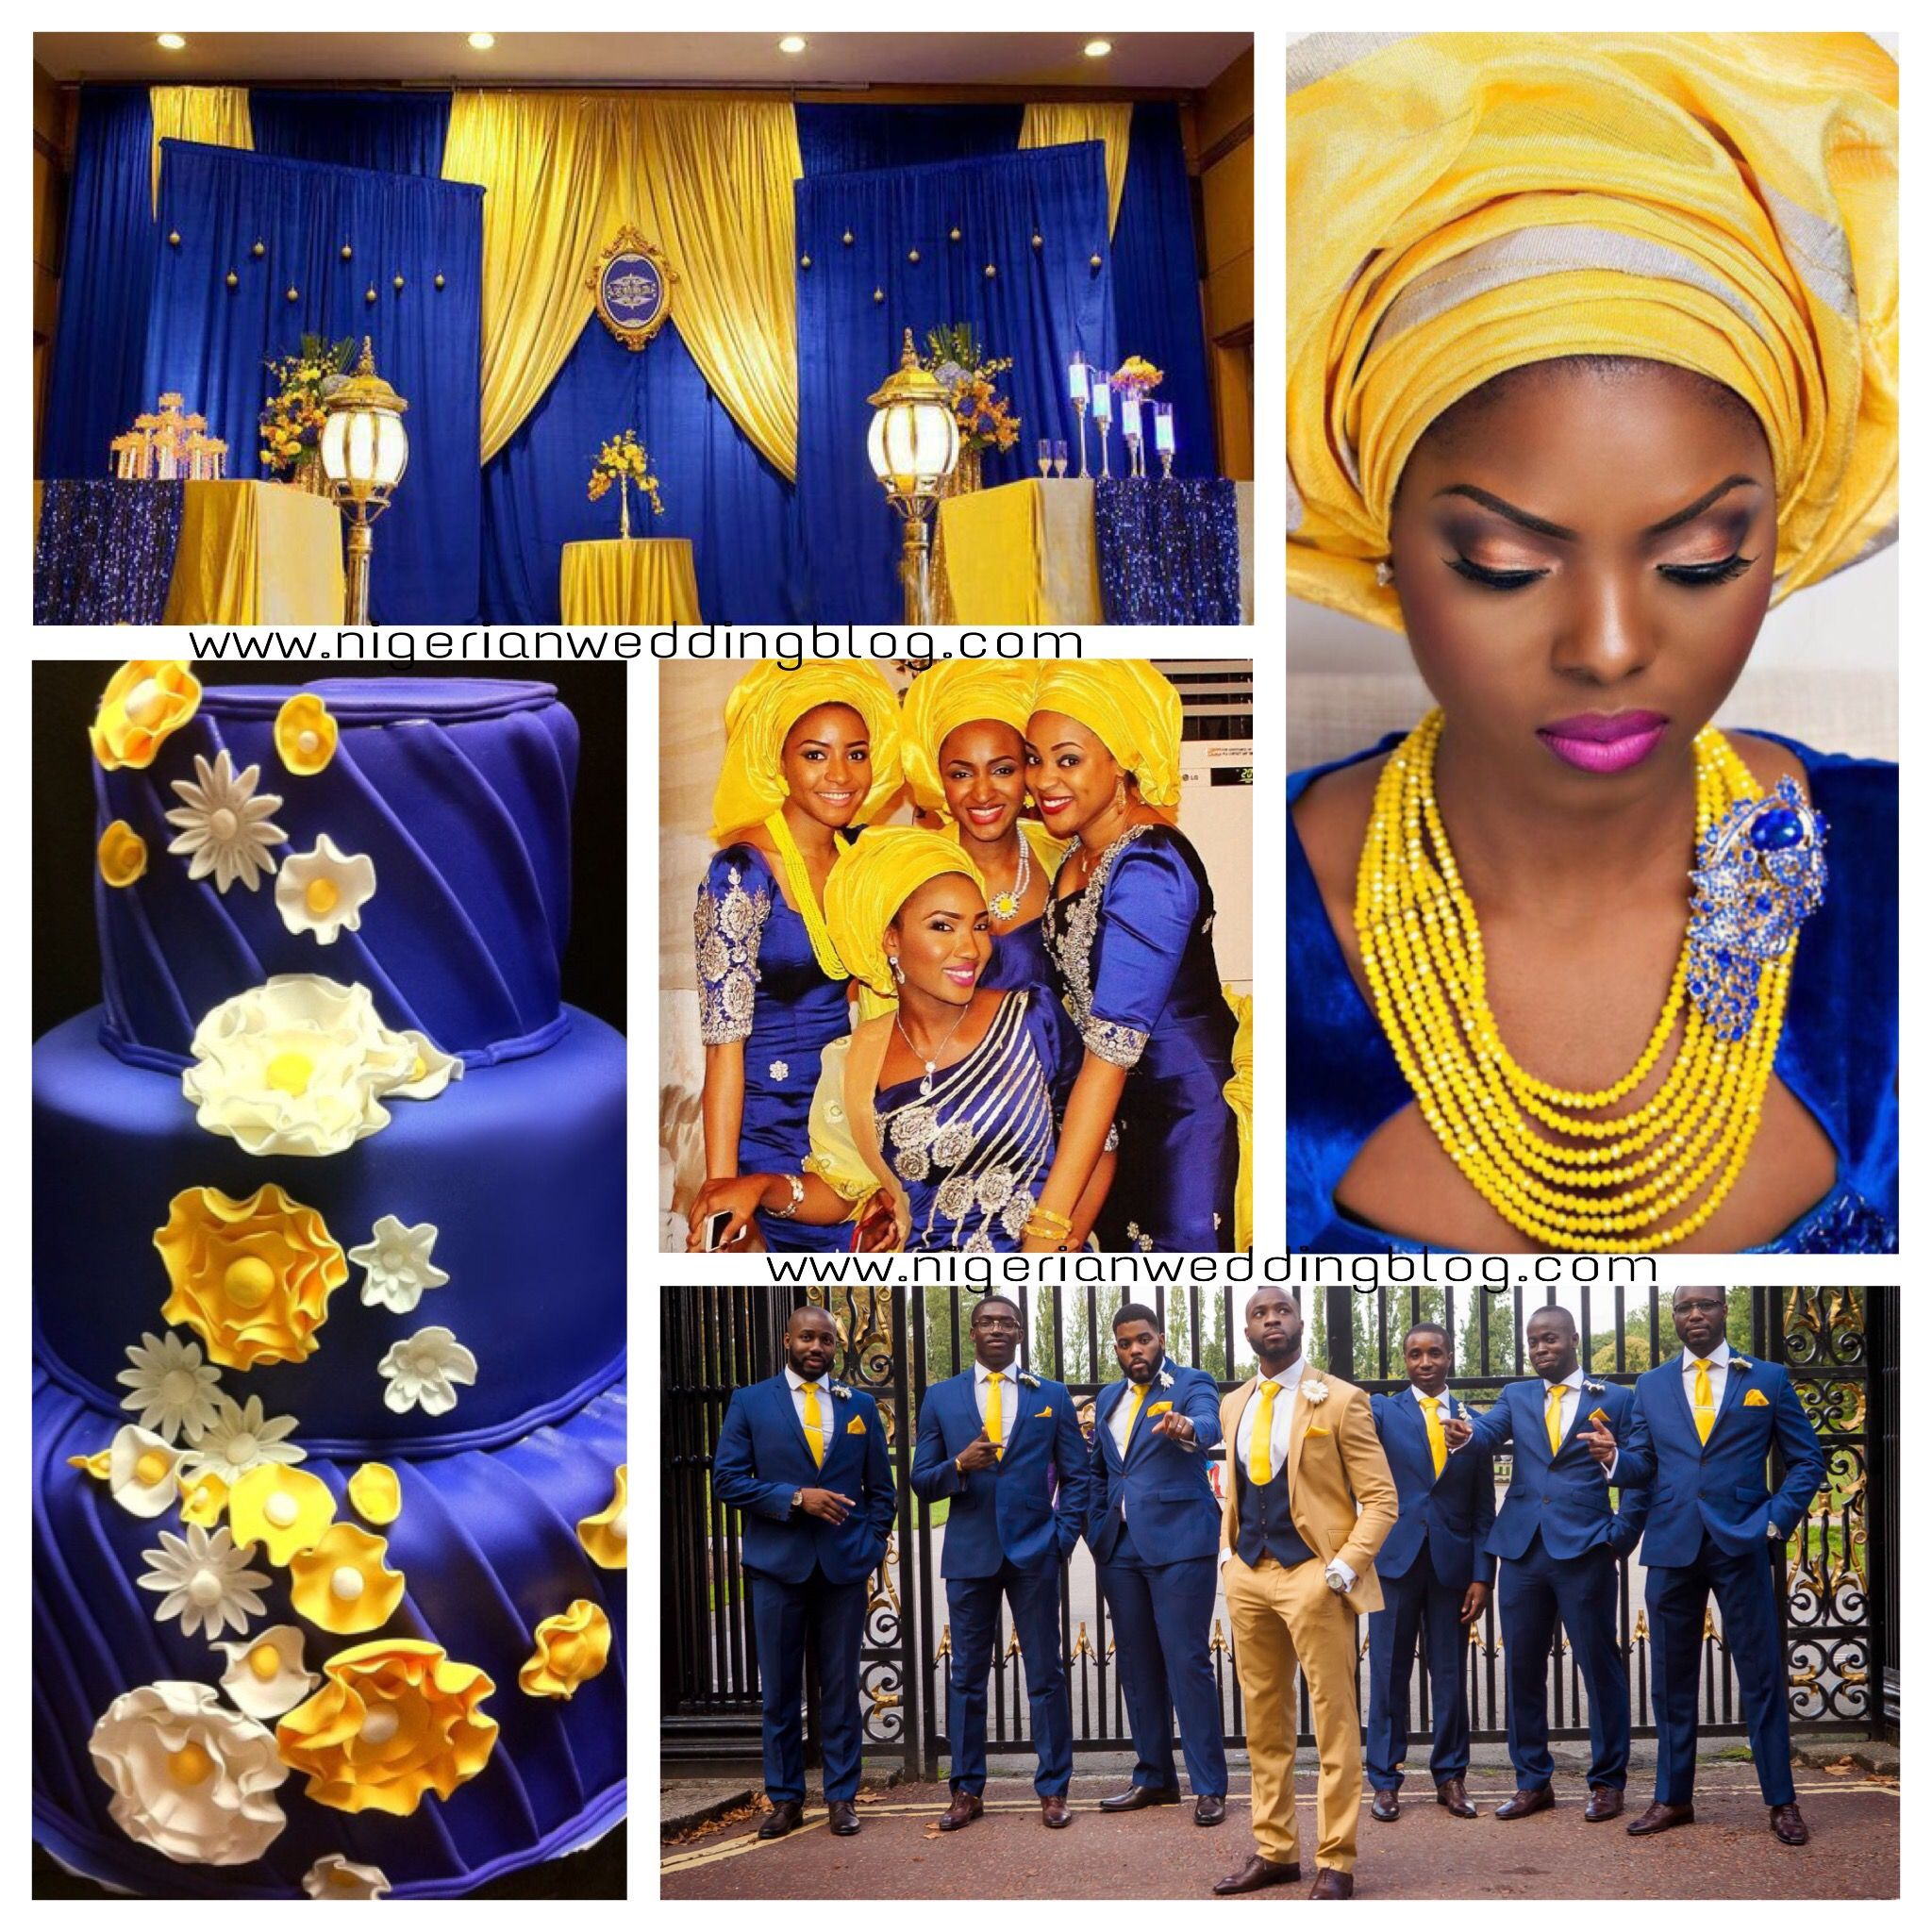 Nigerian Wedding Nigerian Wedding: Navy Blue \u0026 Yellow Wedding ...